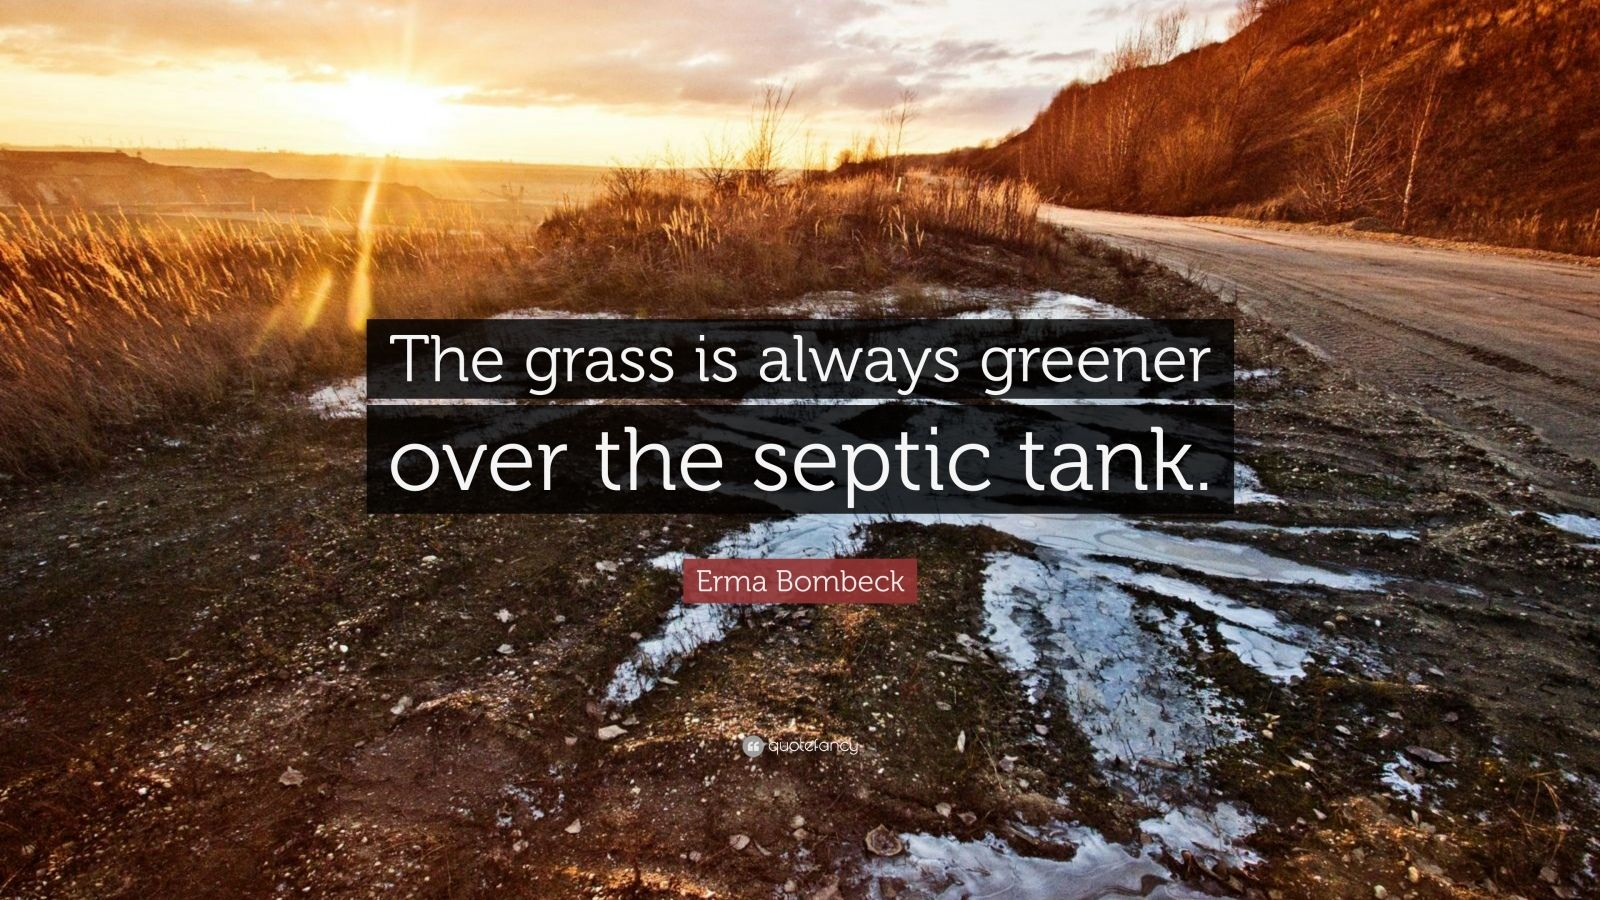 Erma Bombeck Quote The Grass Is Always Greener Over The Septic Tank 12 Wallpapers Quotefancy